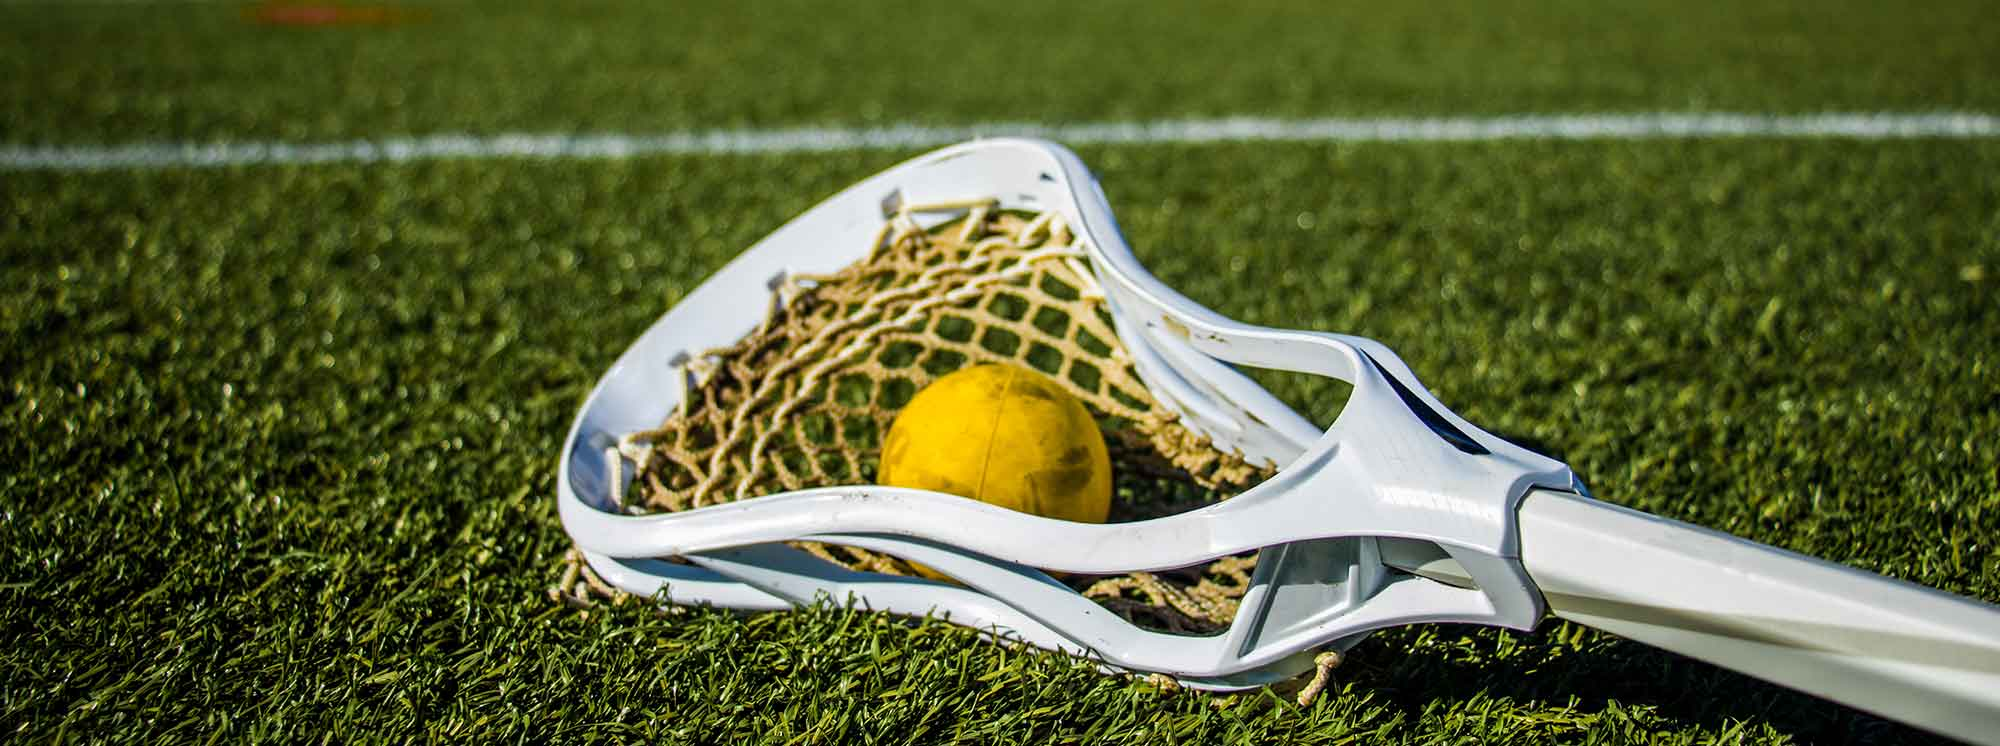 Best Lacrosse Camps in North America